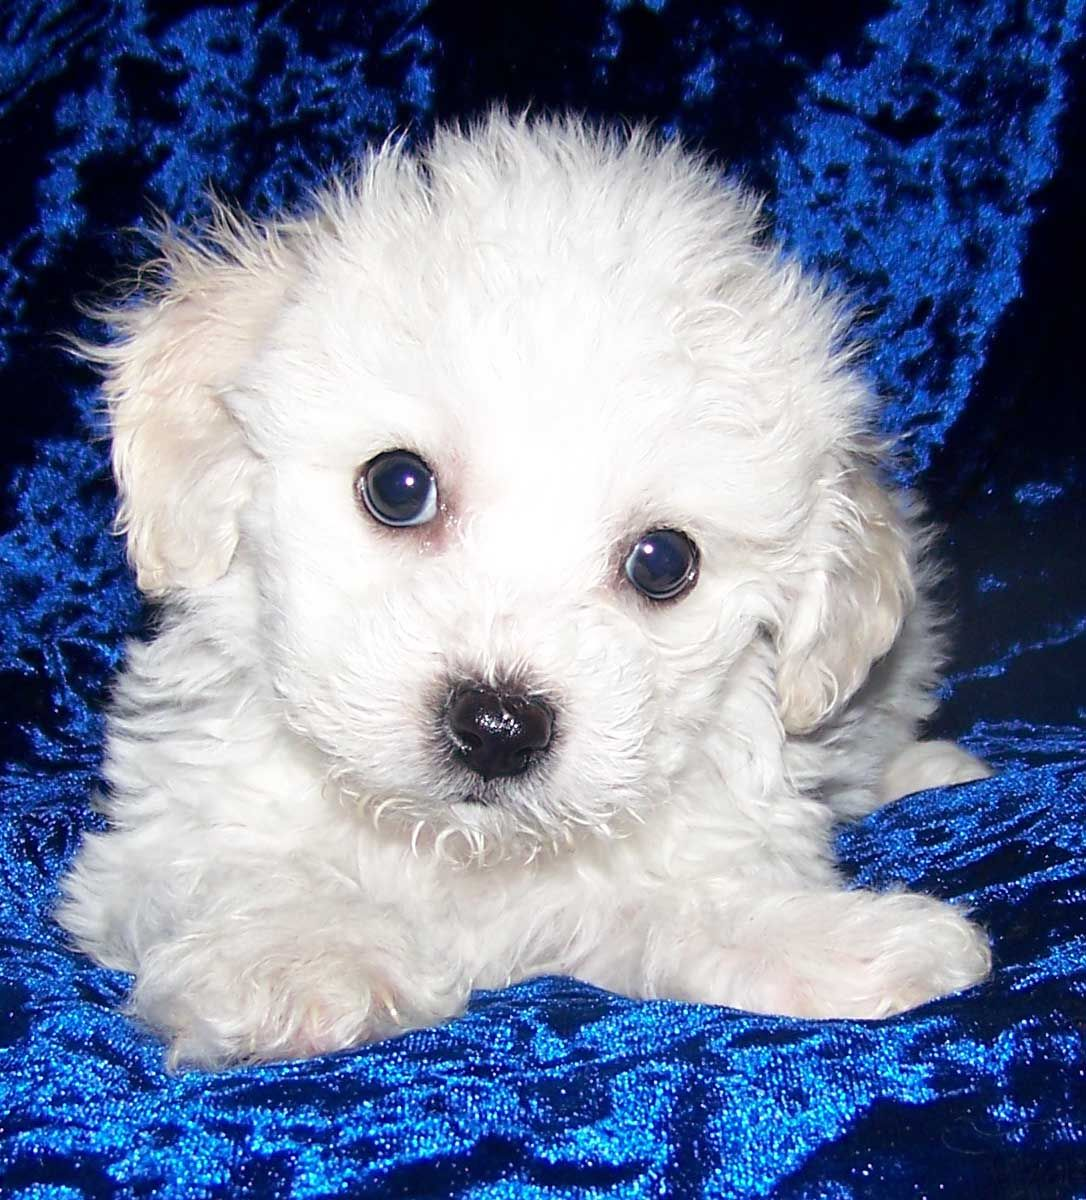 Bichon S Due Soon Bichon Frise Puppy Puppies Boston Terrier Puppy